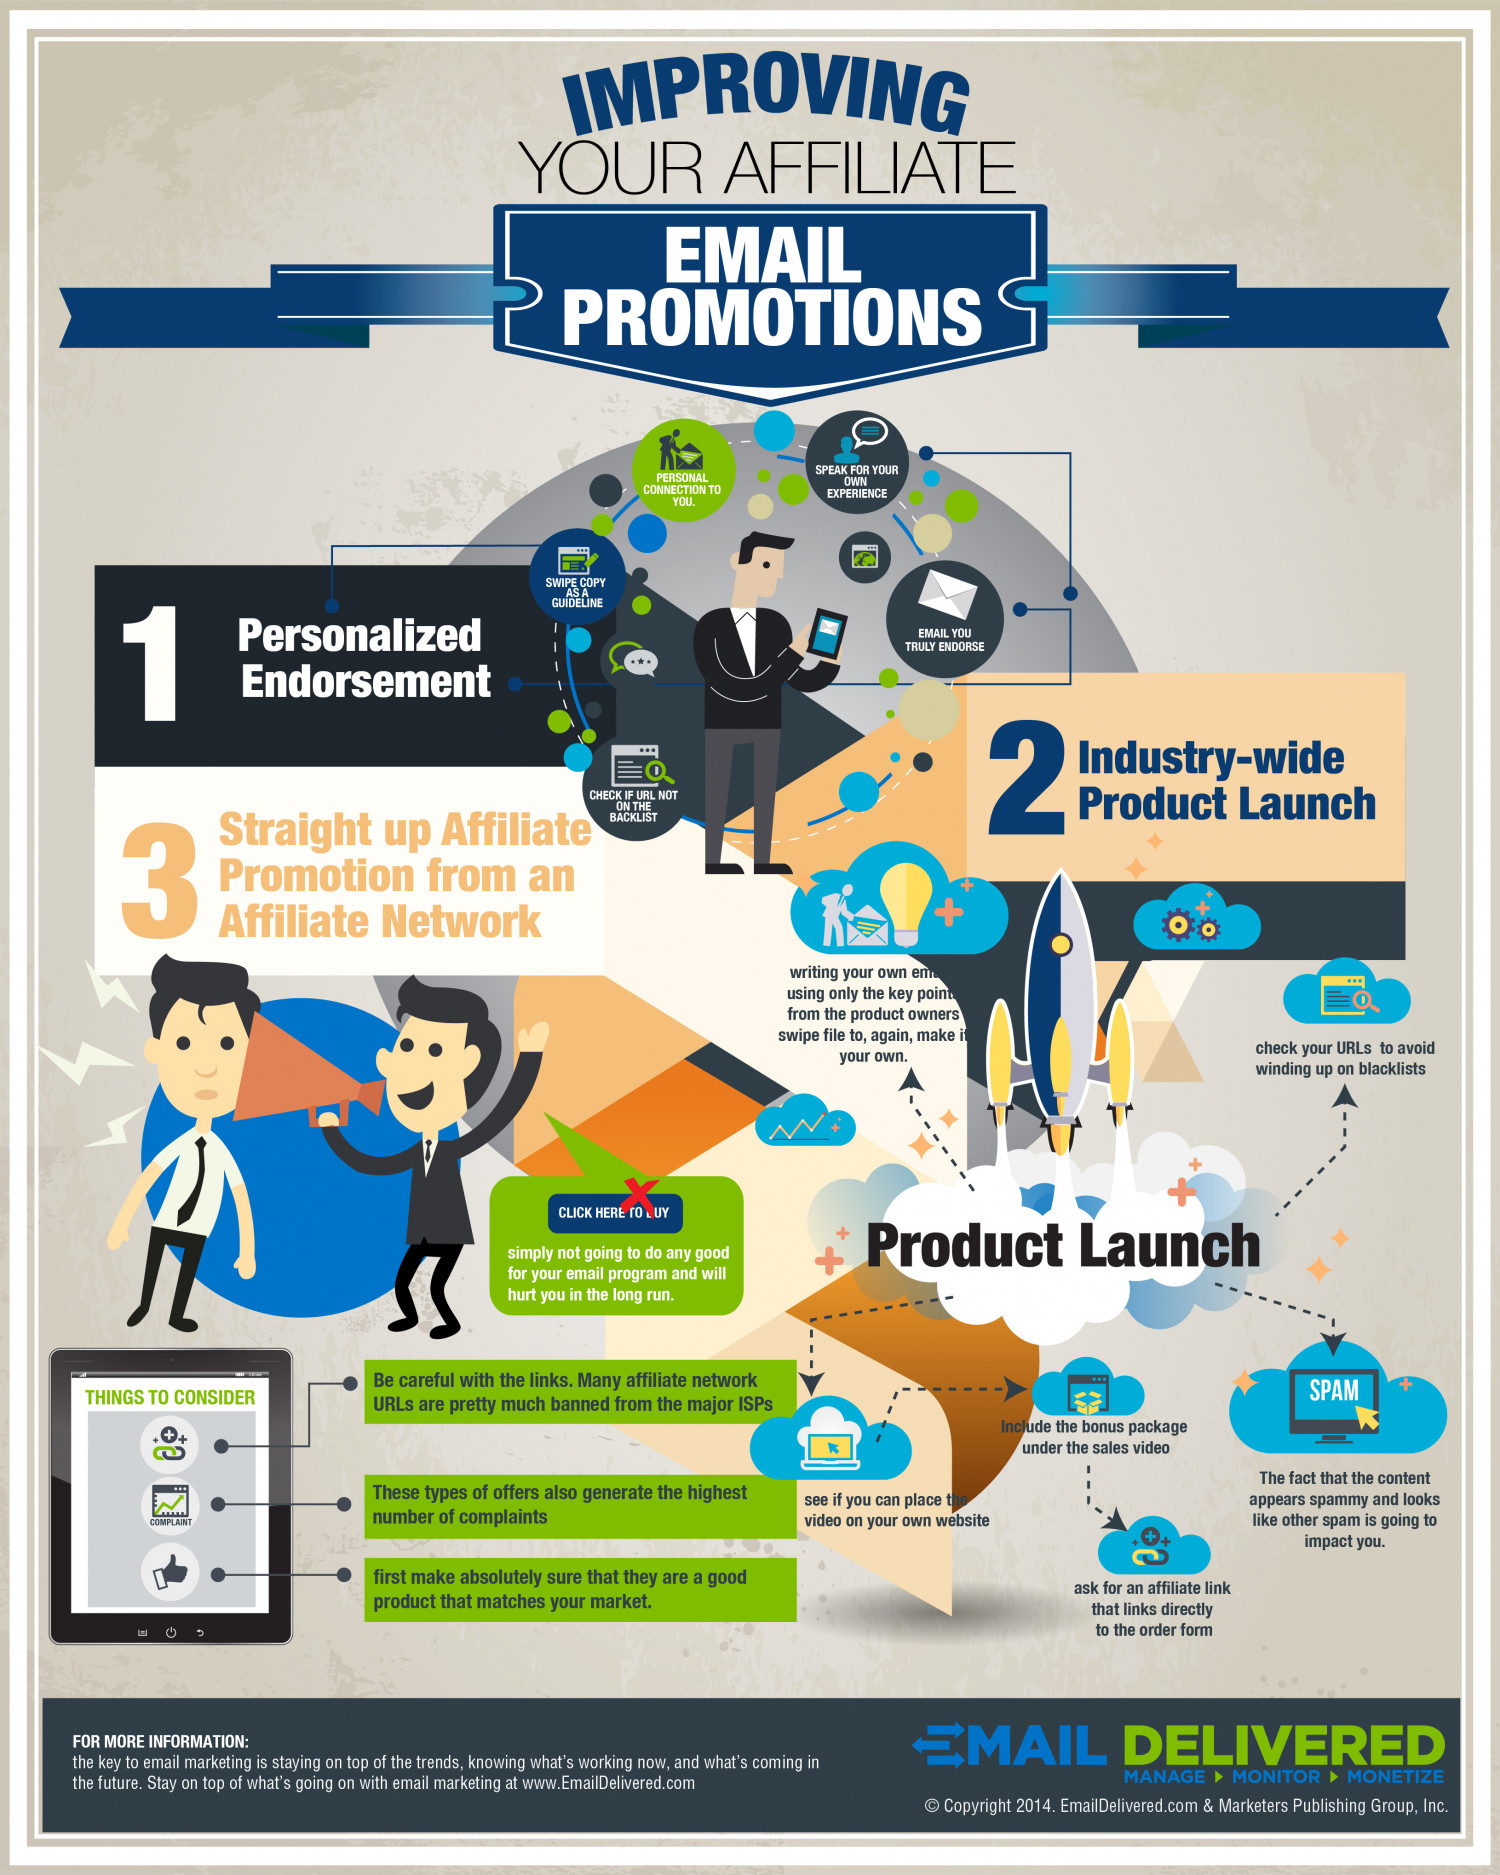 Improving your Affiliate Email Promotions Infographic